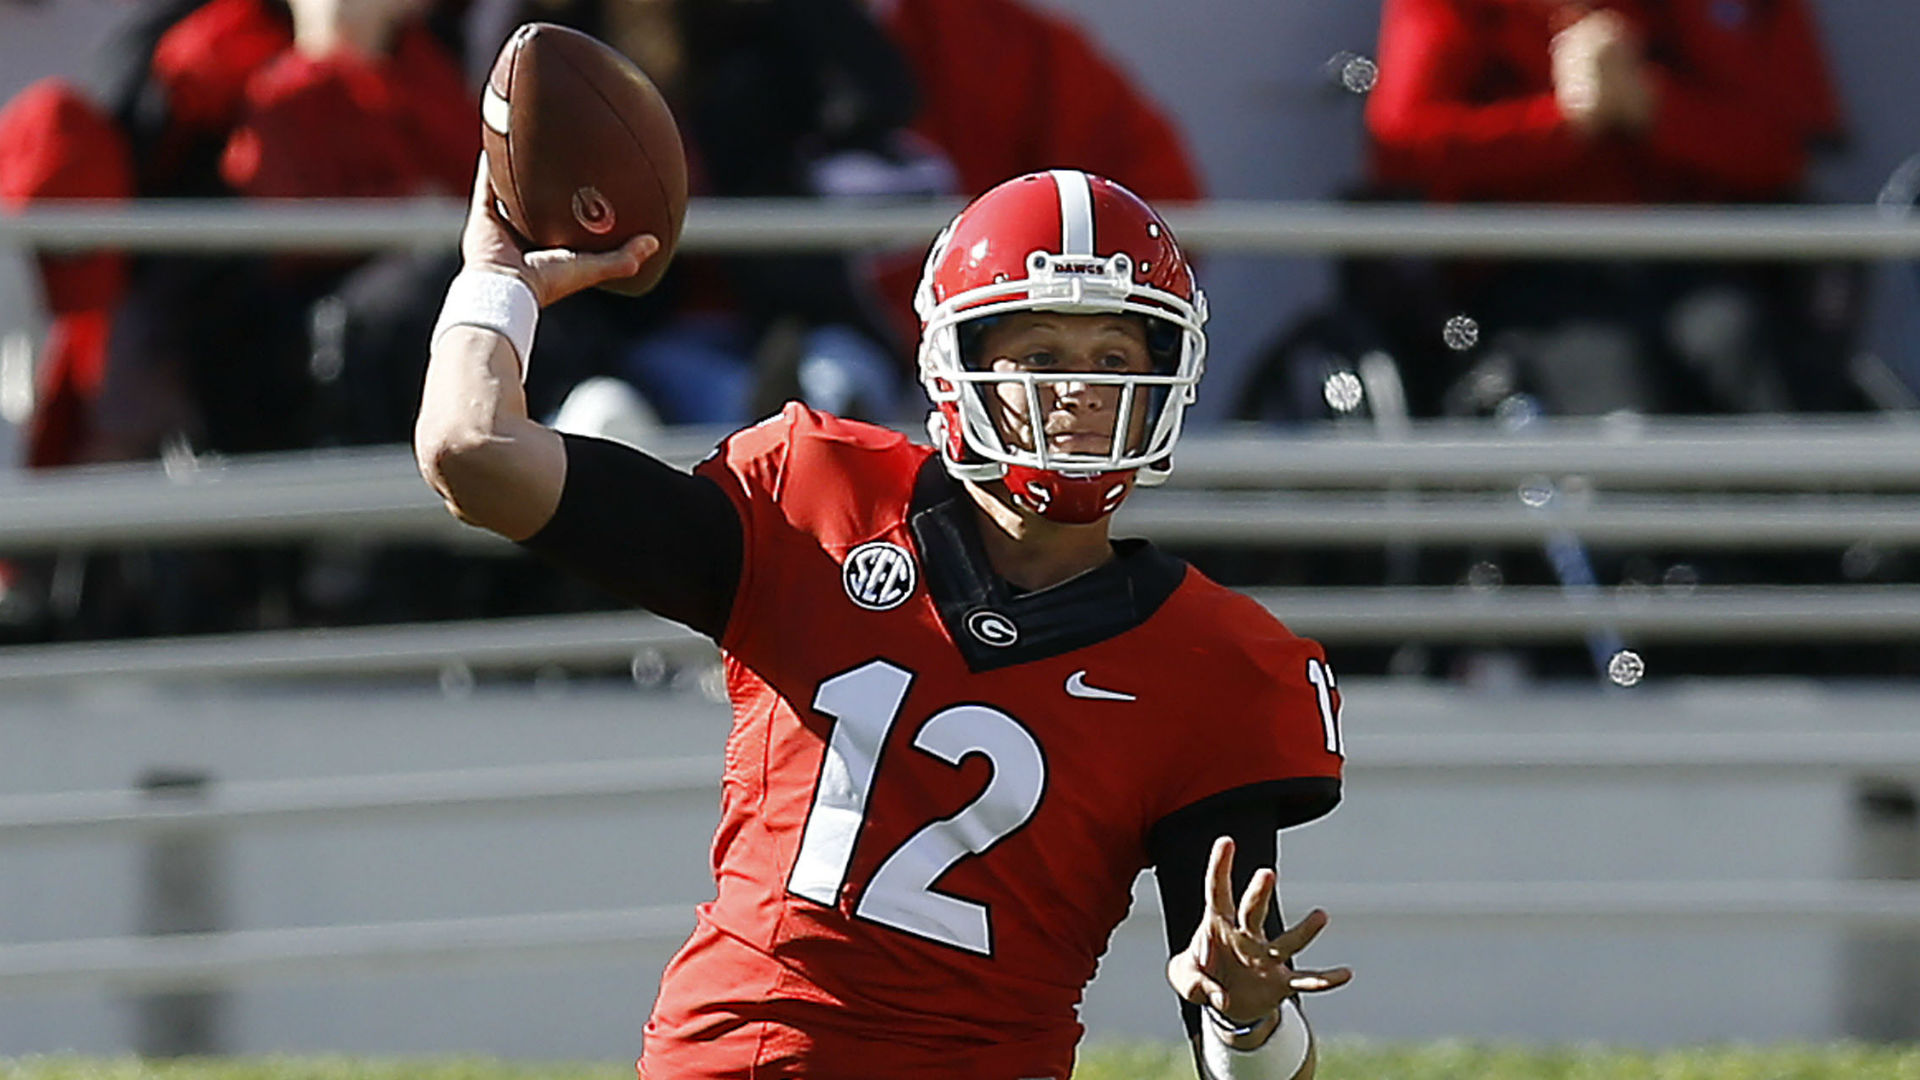 Georgia quarterback Brice Ramsey